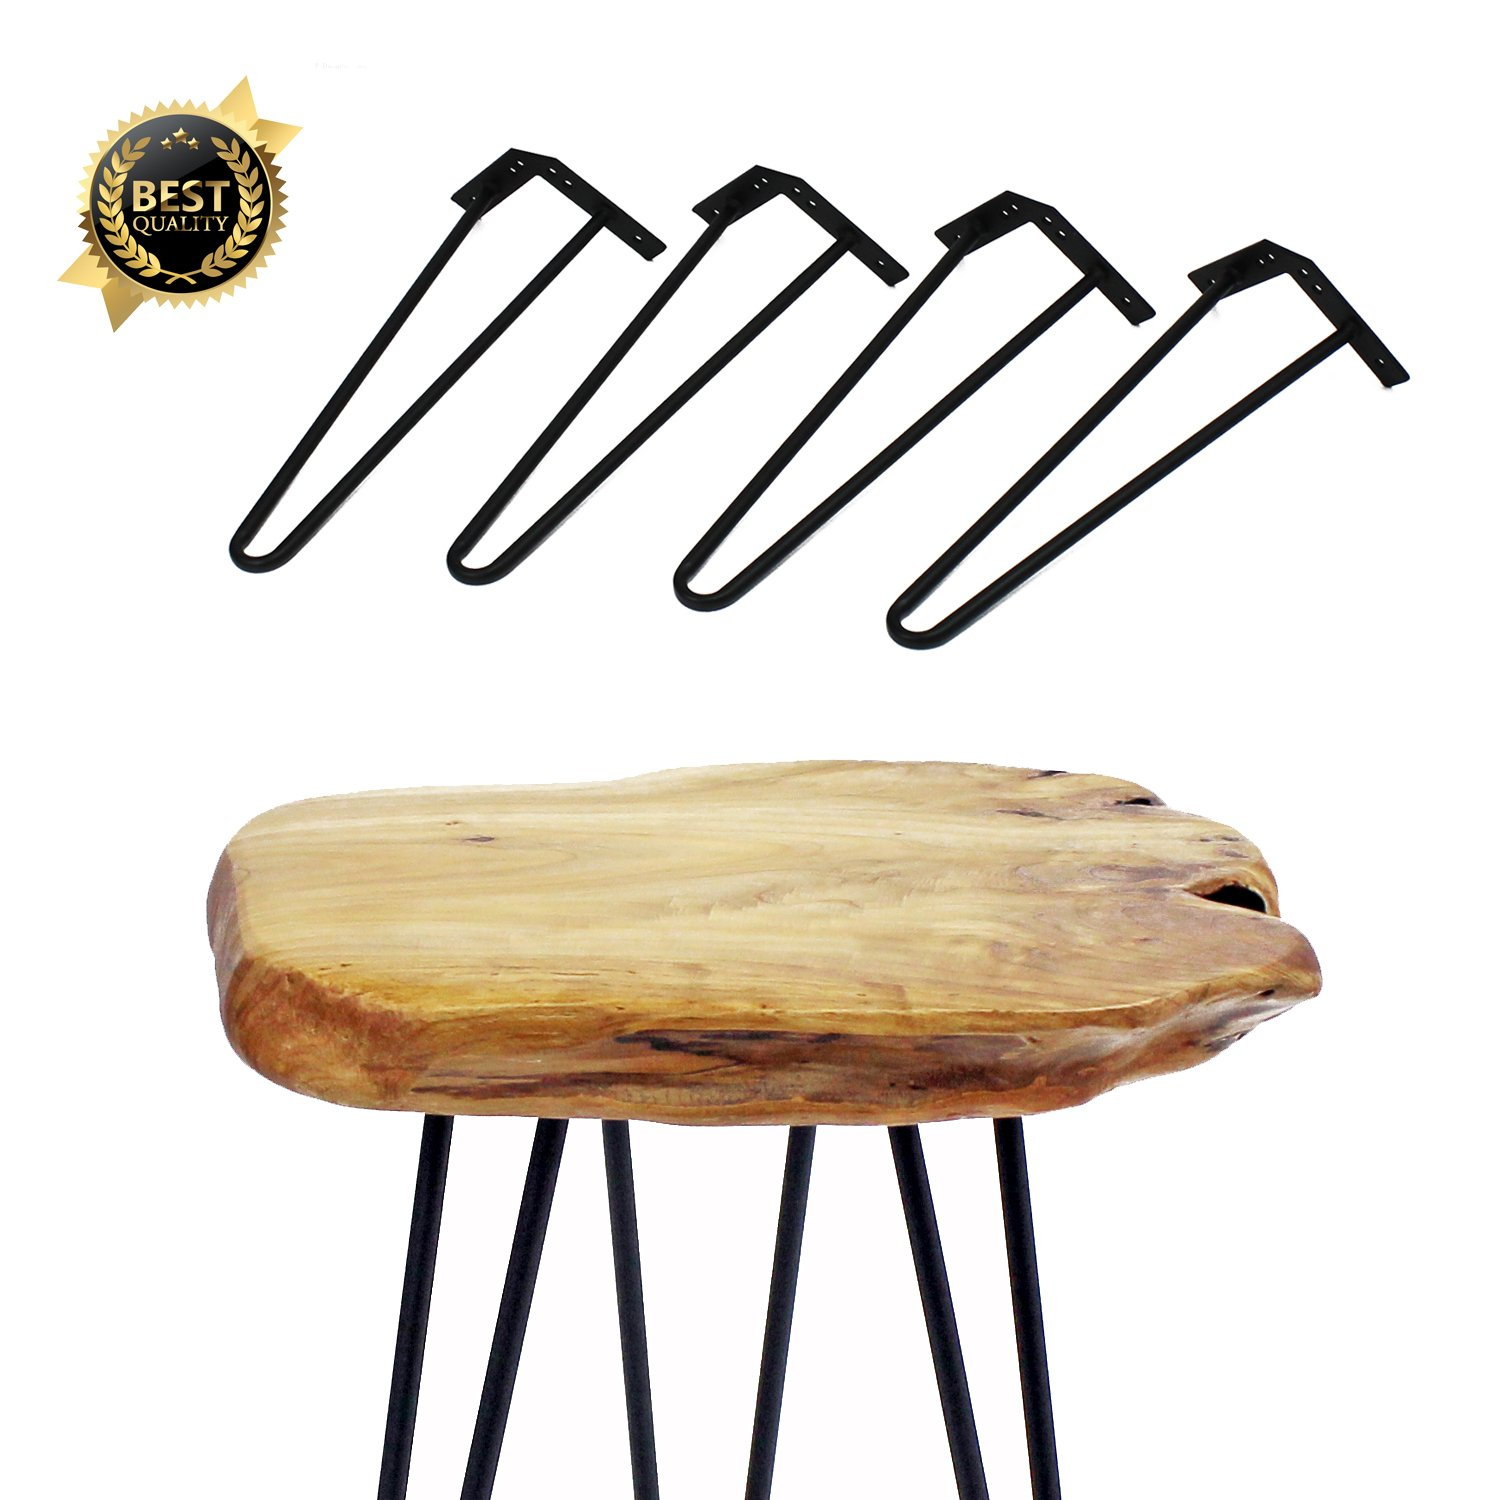 Set of 4 14'' Furniture Hairpin Metal Legs (14-inch) Heavy Duty Use for Wood Tabletop